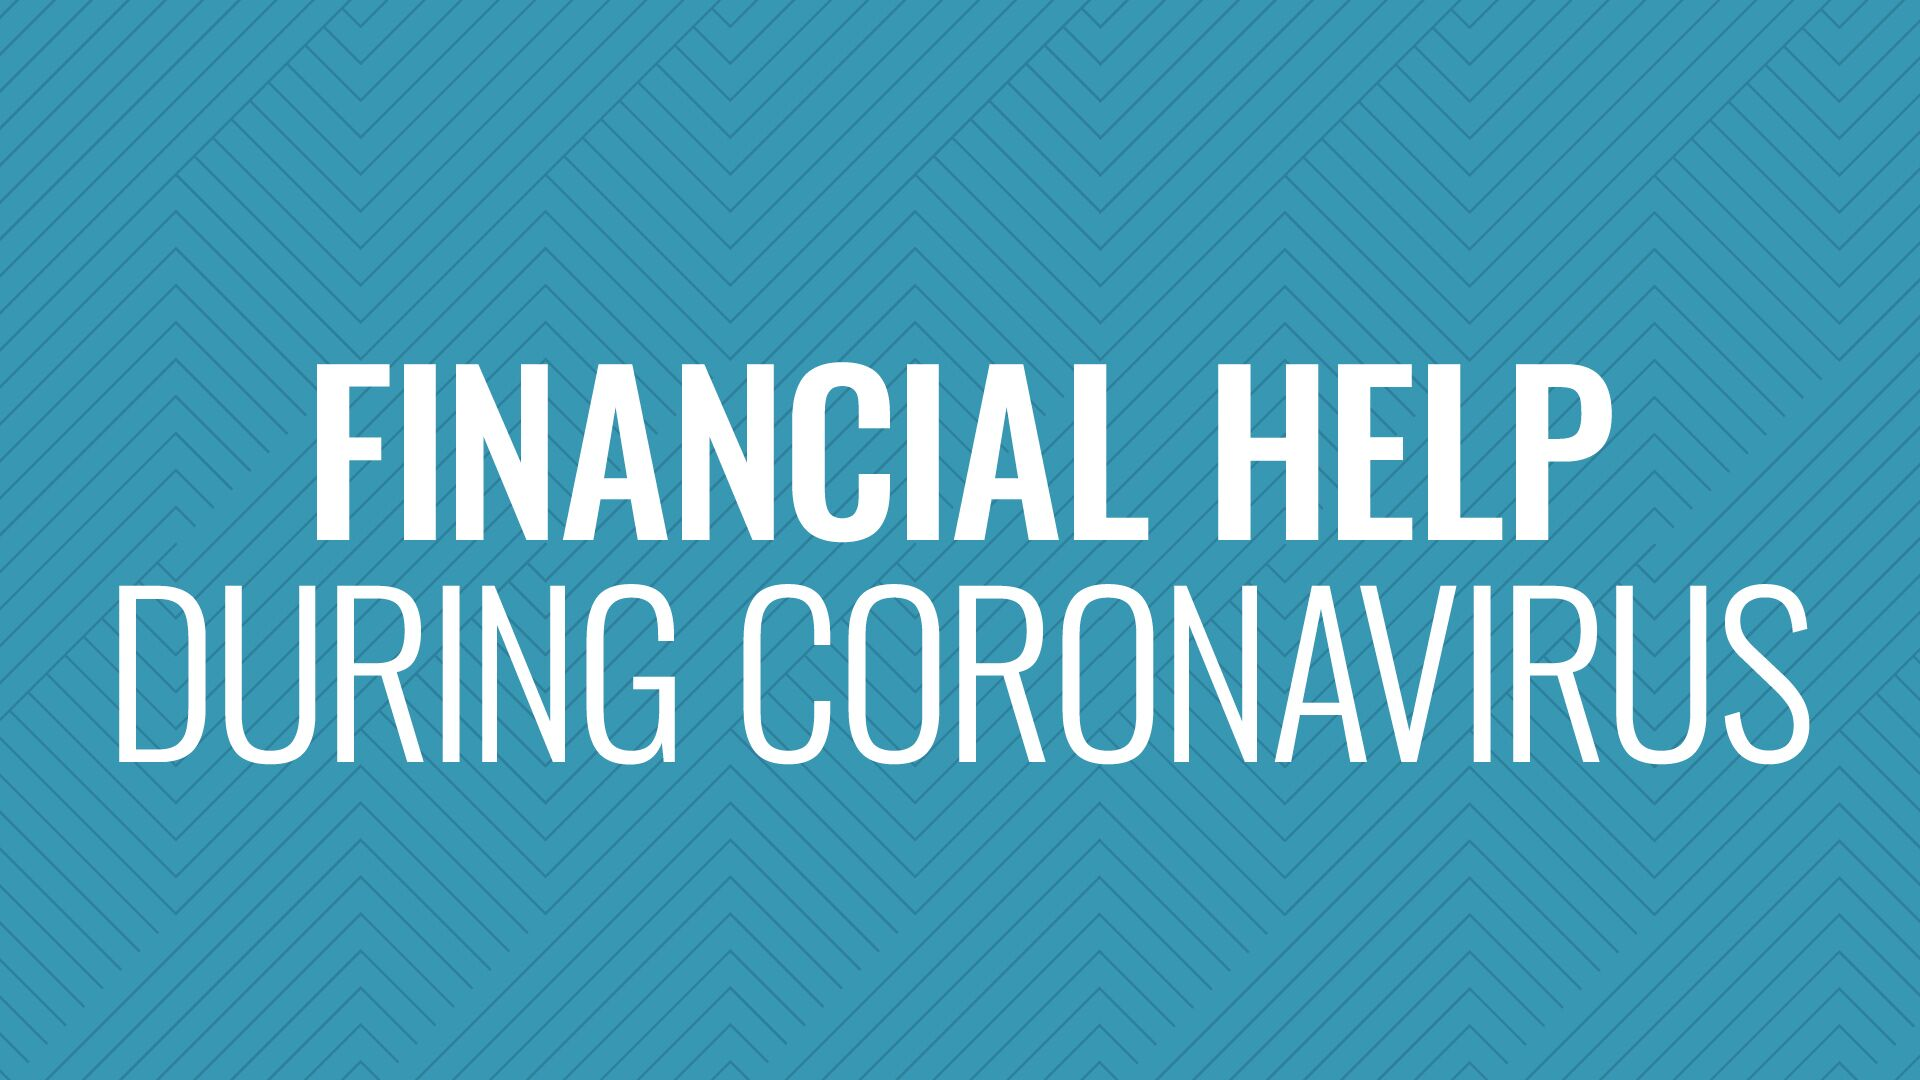 Financial Help During Coronavirus Hero Image